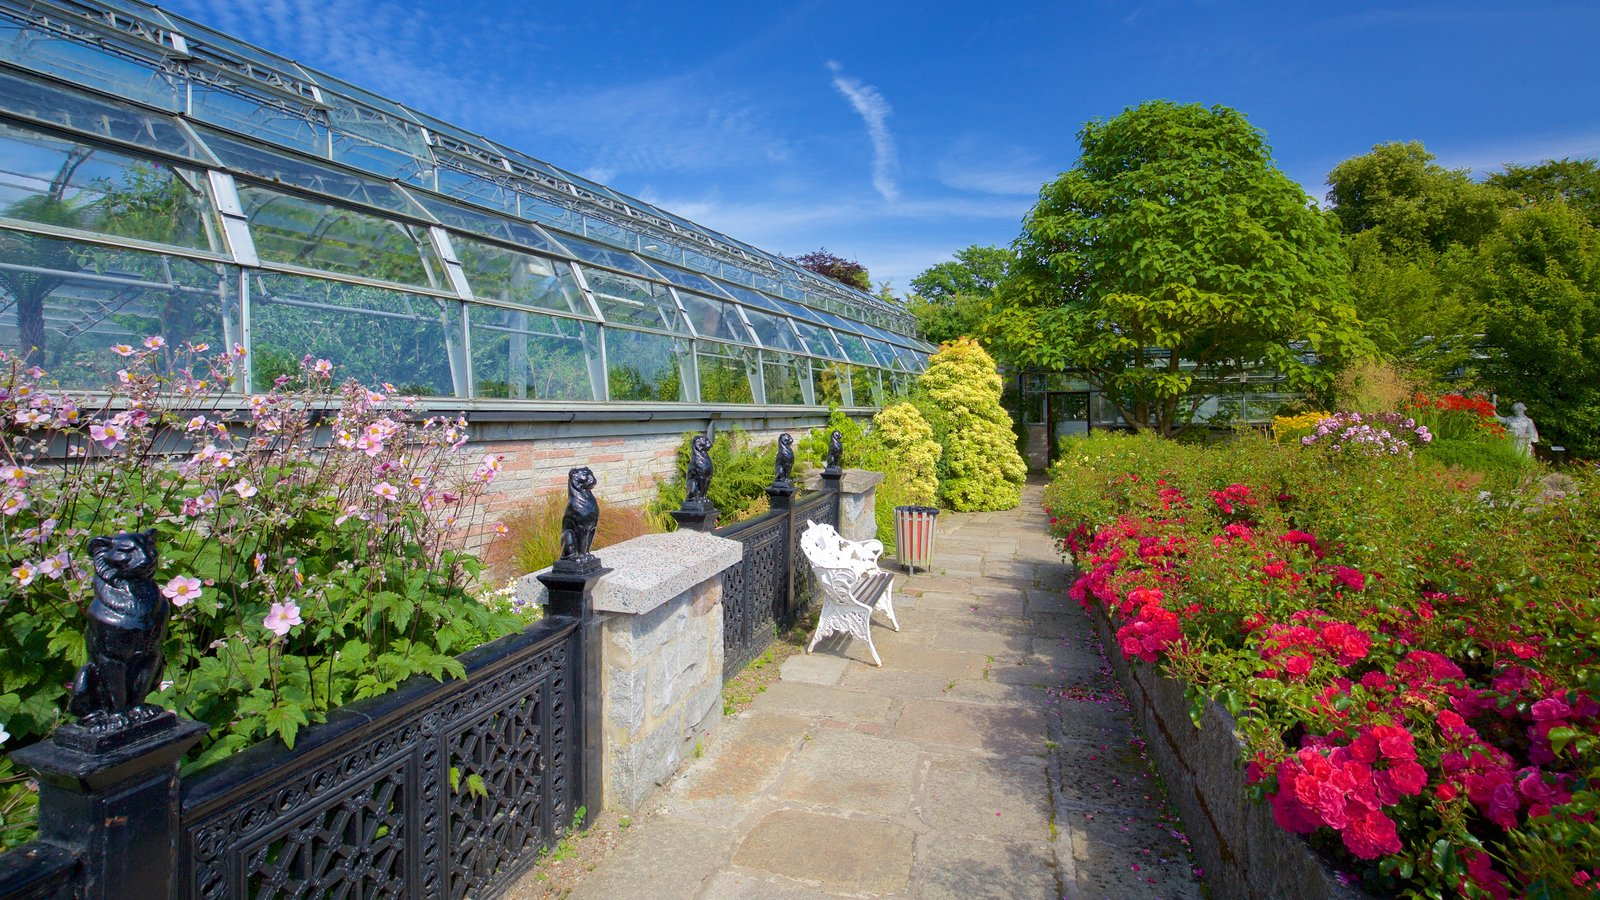 Duthie Park Winter Gardens which includes wild flowers, a park and flowers